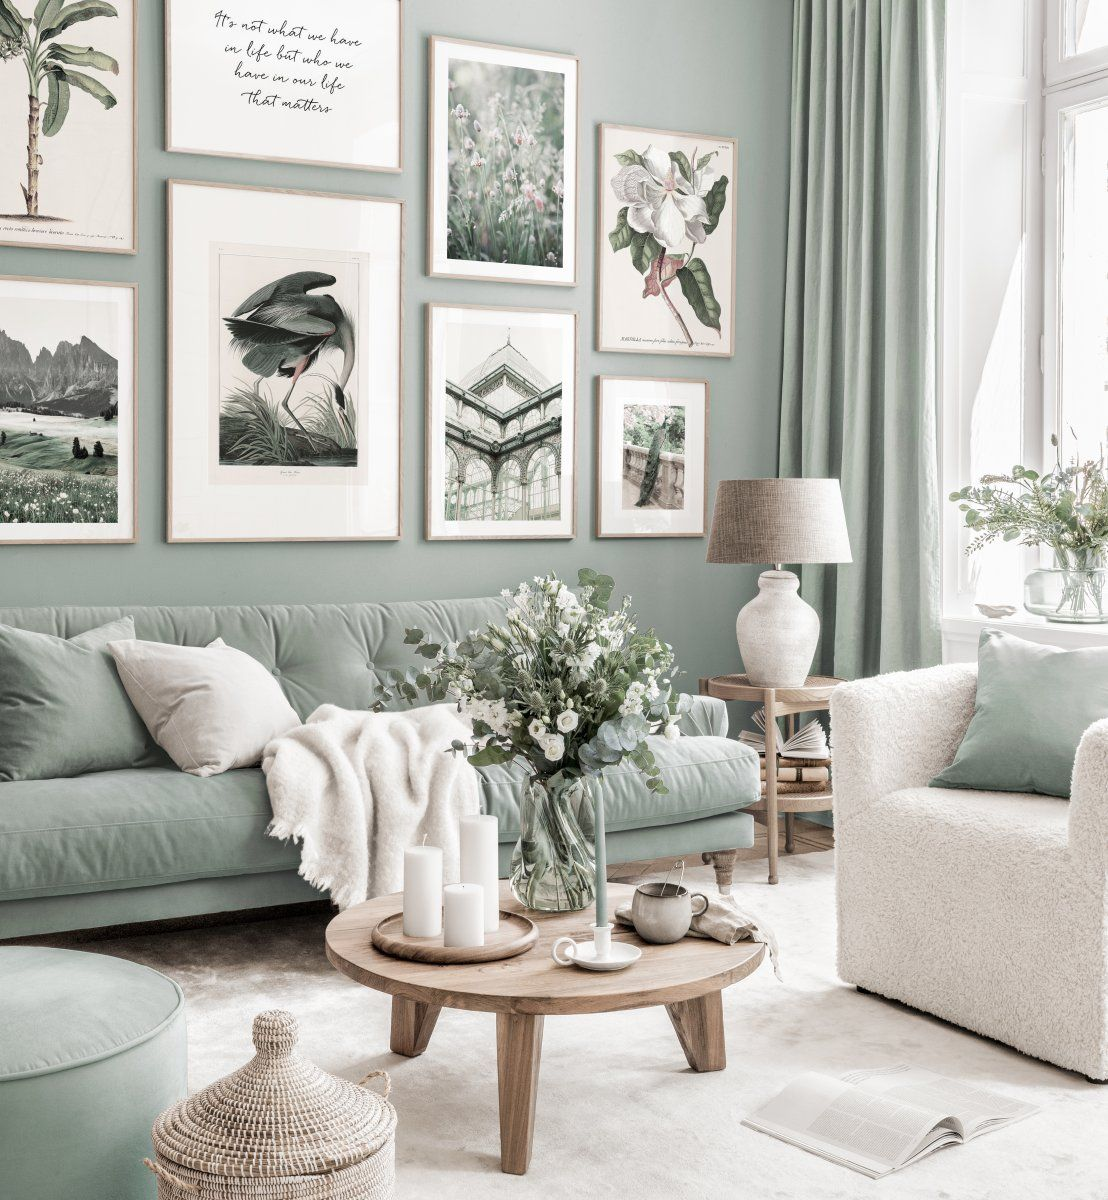 Stylish Gallery Wall Art Mint Green Living Room Illustration Posters Oak Frames Green Walls Living Room Living Room Illustration Living Room Green Picture for living room